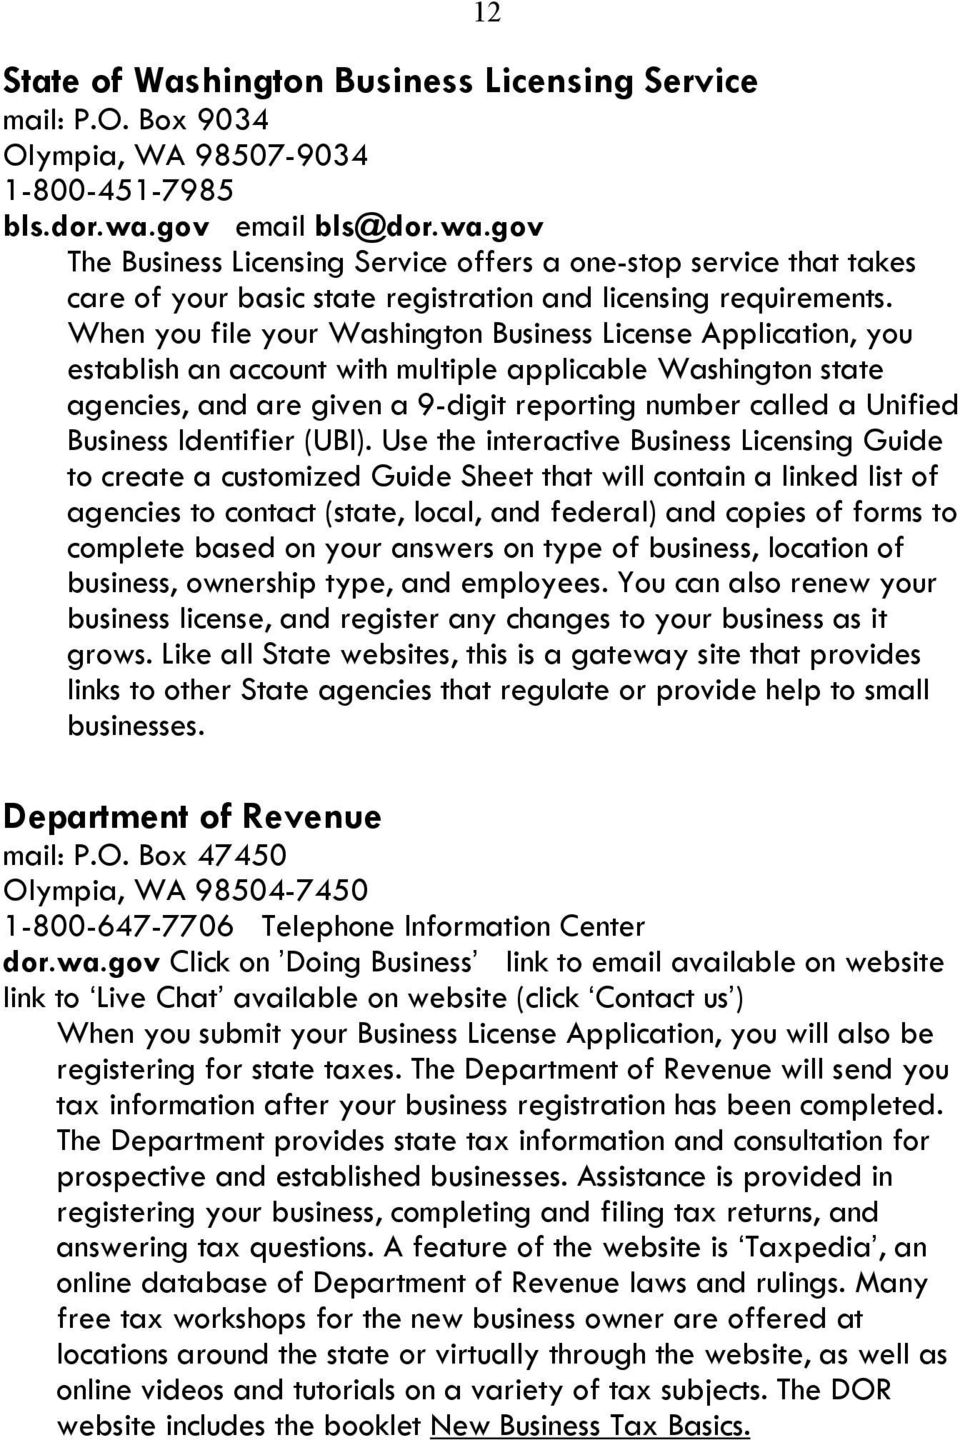 When you file your Washington Business License Application, you establish an account with multiple applicable Washington state agencies, and are given a 9-digit reporting number called a Unified